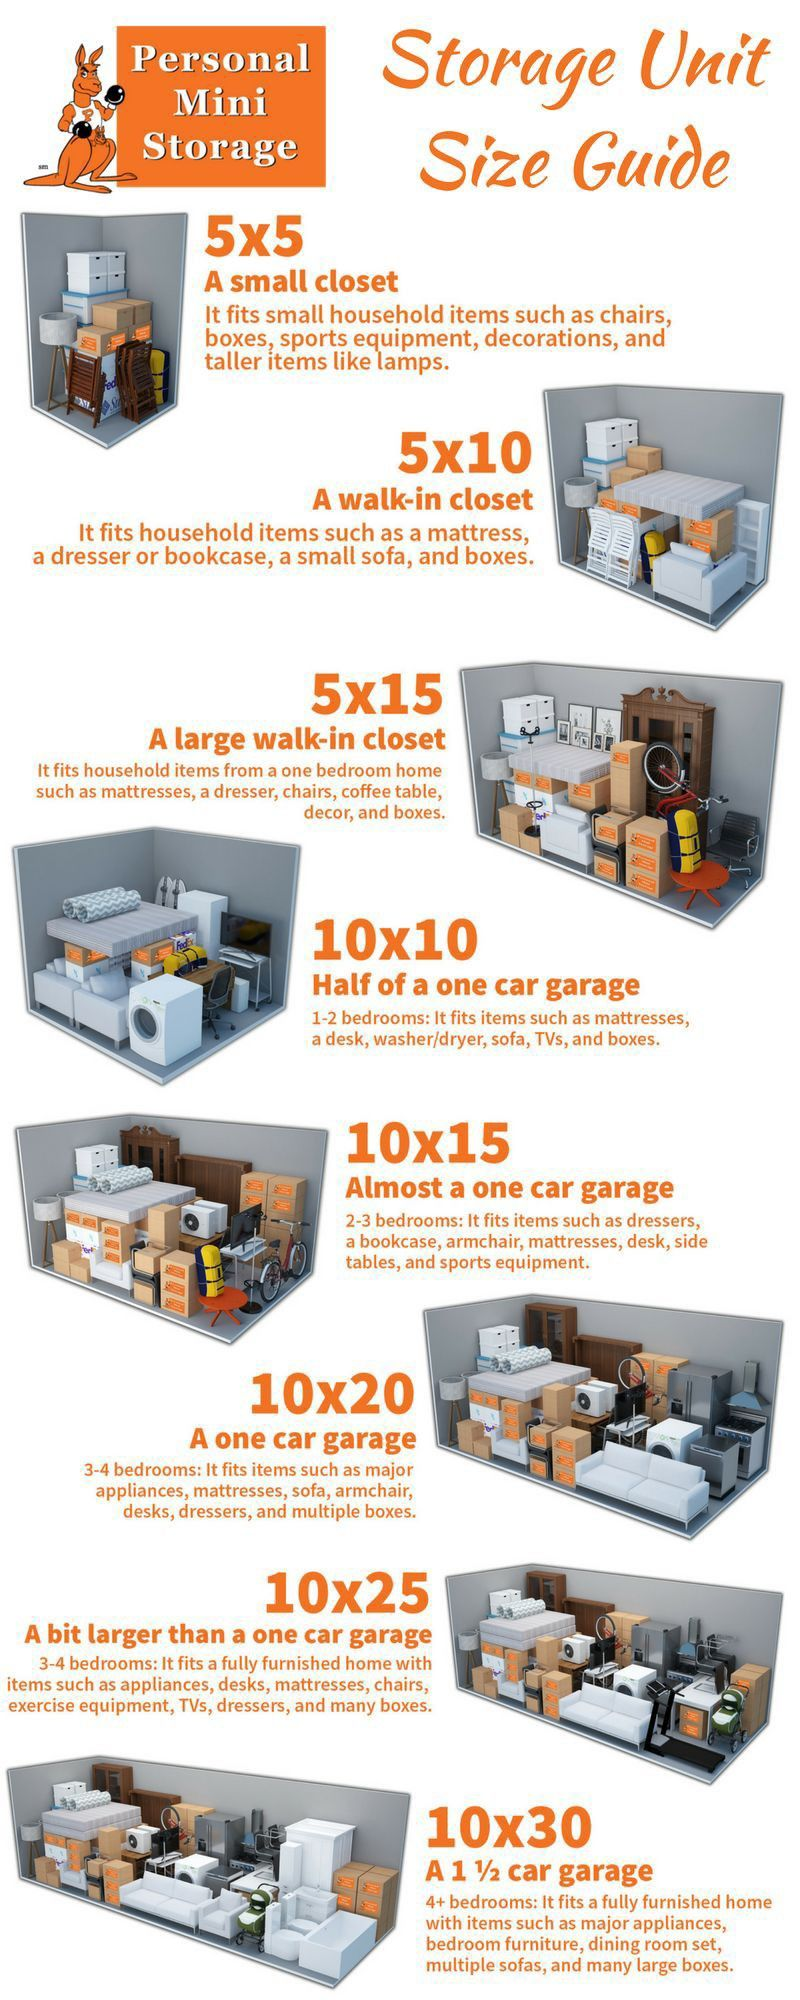 Pin by Nikki Runnels on Moving  Storage unit organization